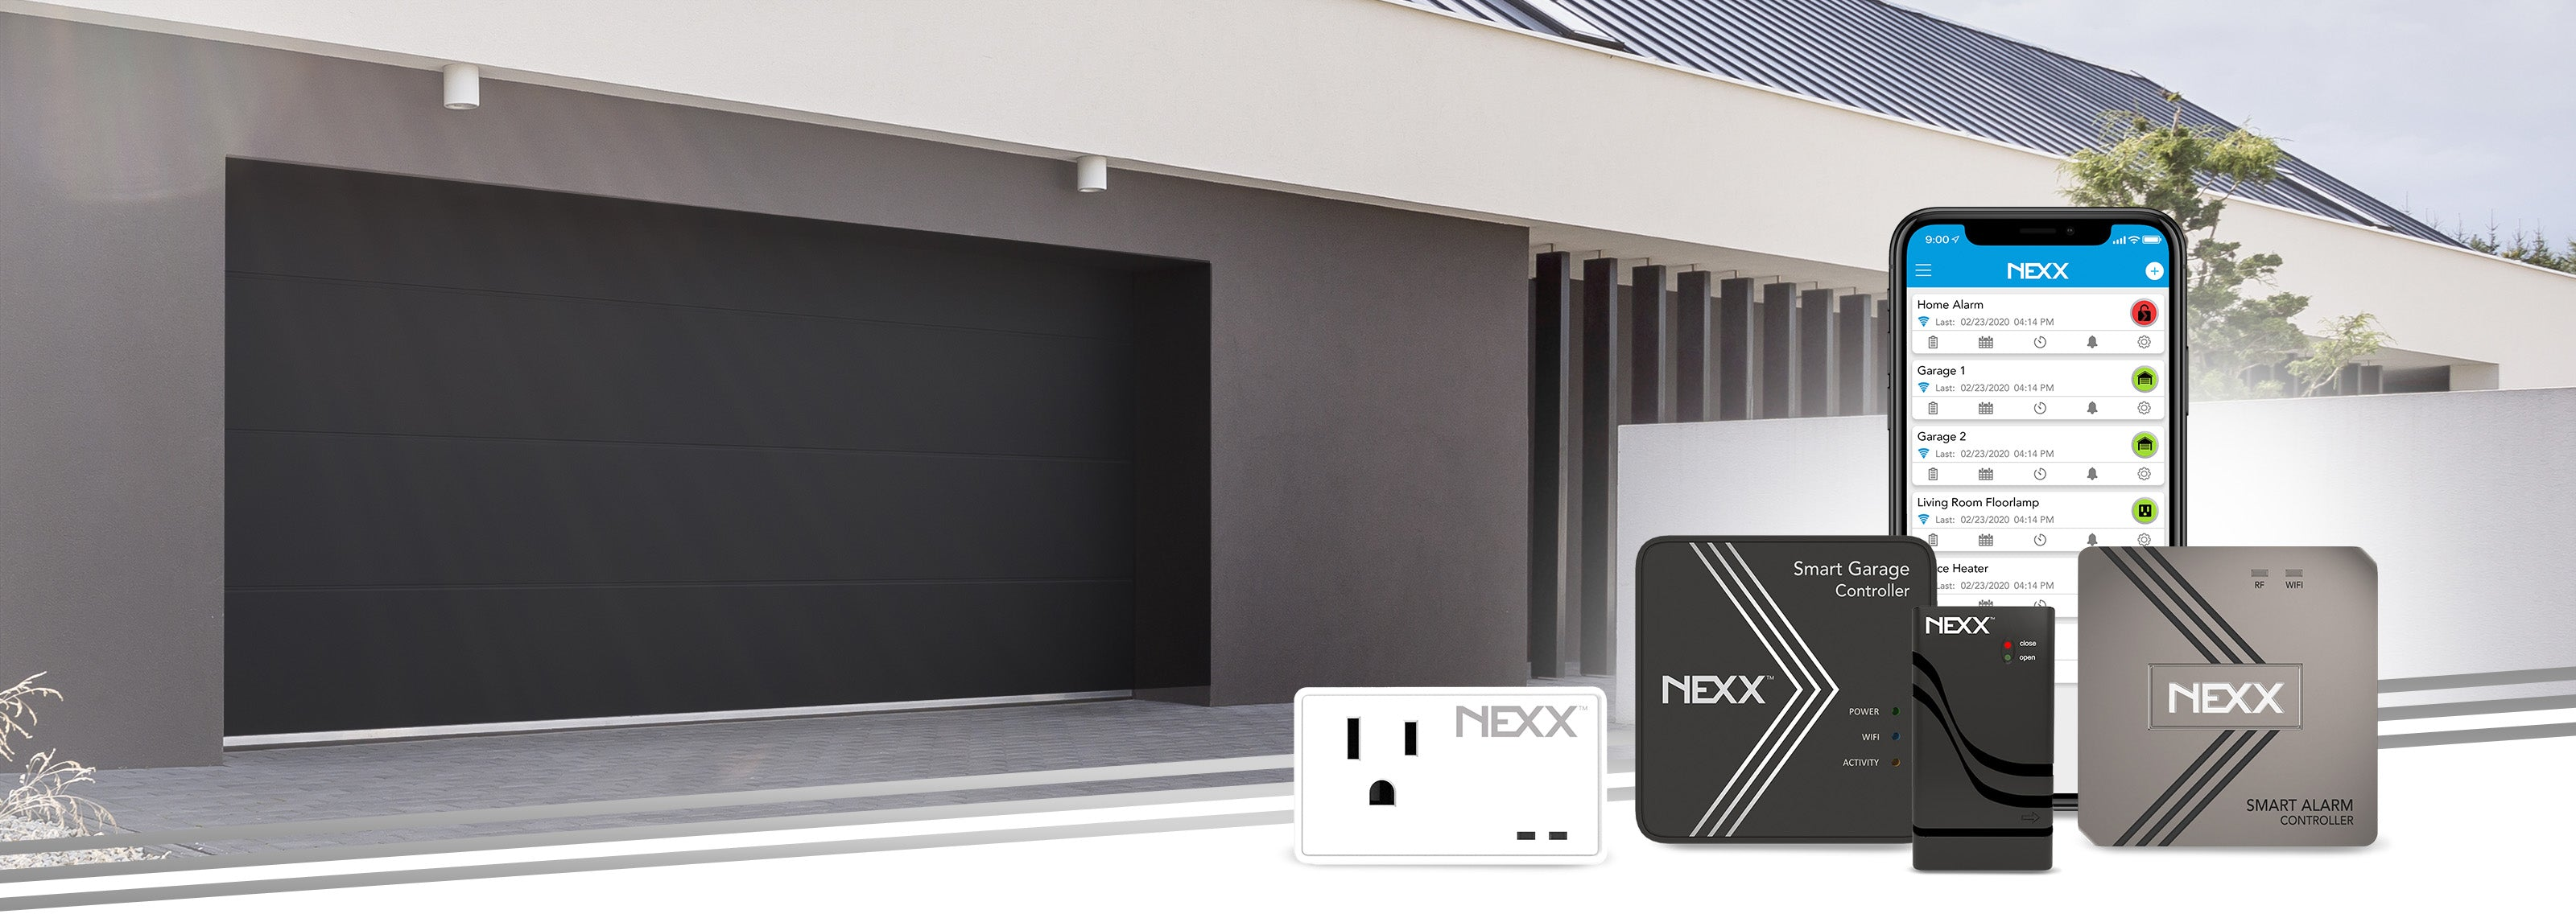 Smart Products equal Control plus Peace of Mind Nexx Smart Home Devices